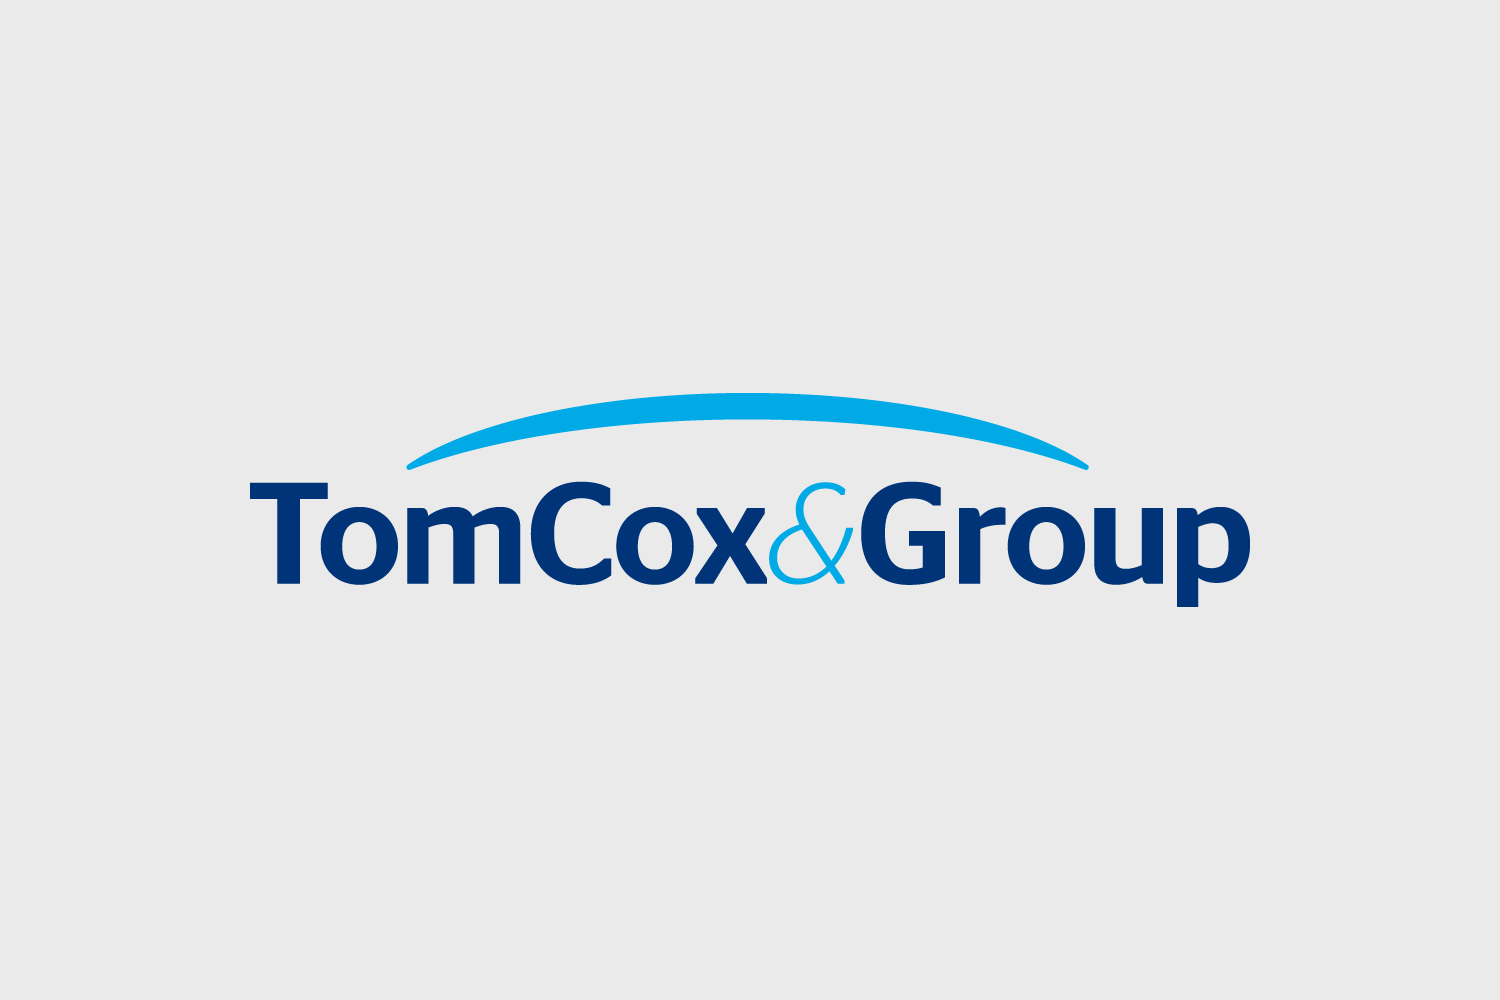 Tomcox & Group logo